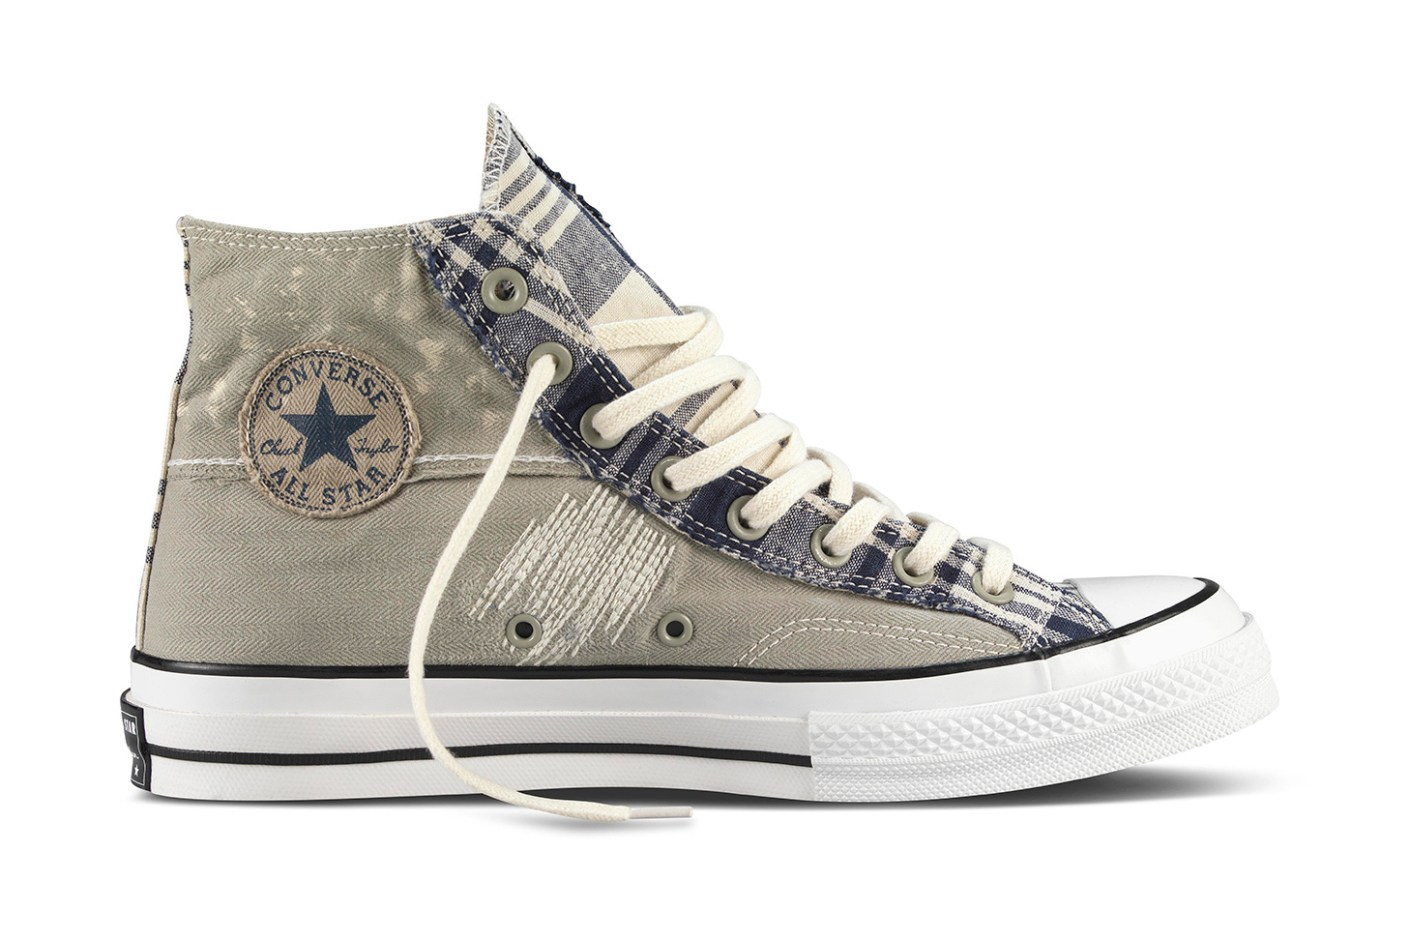 Image of Dr. Romanelli x Converse First String 1970s Chuck Taylor